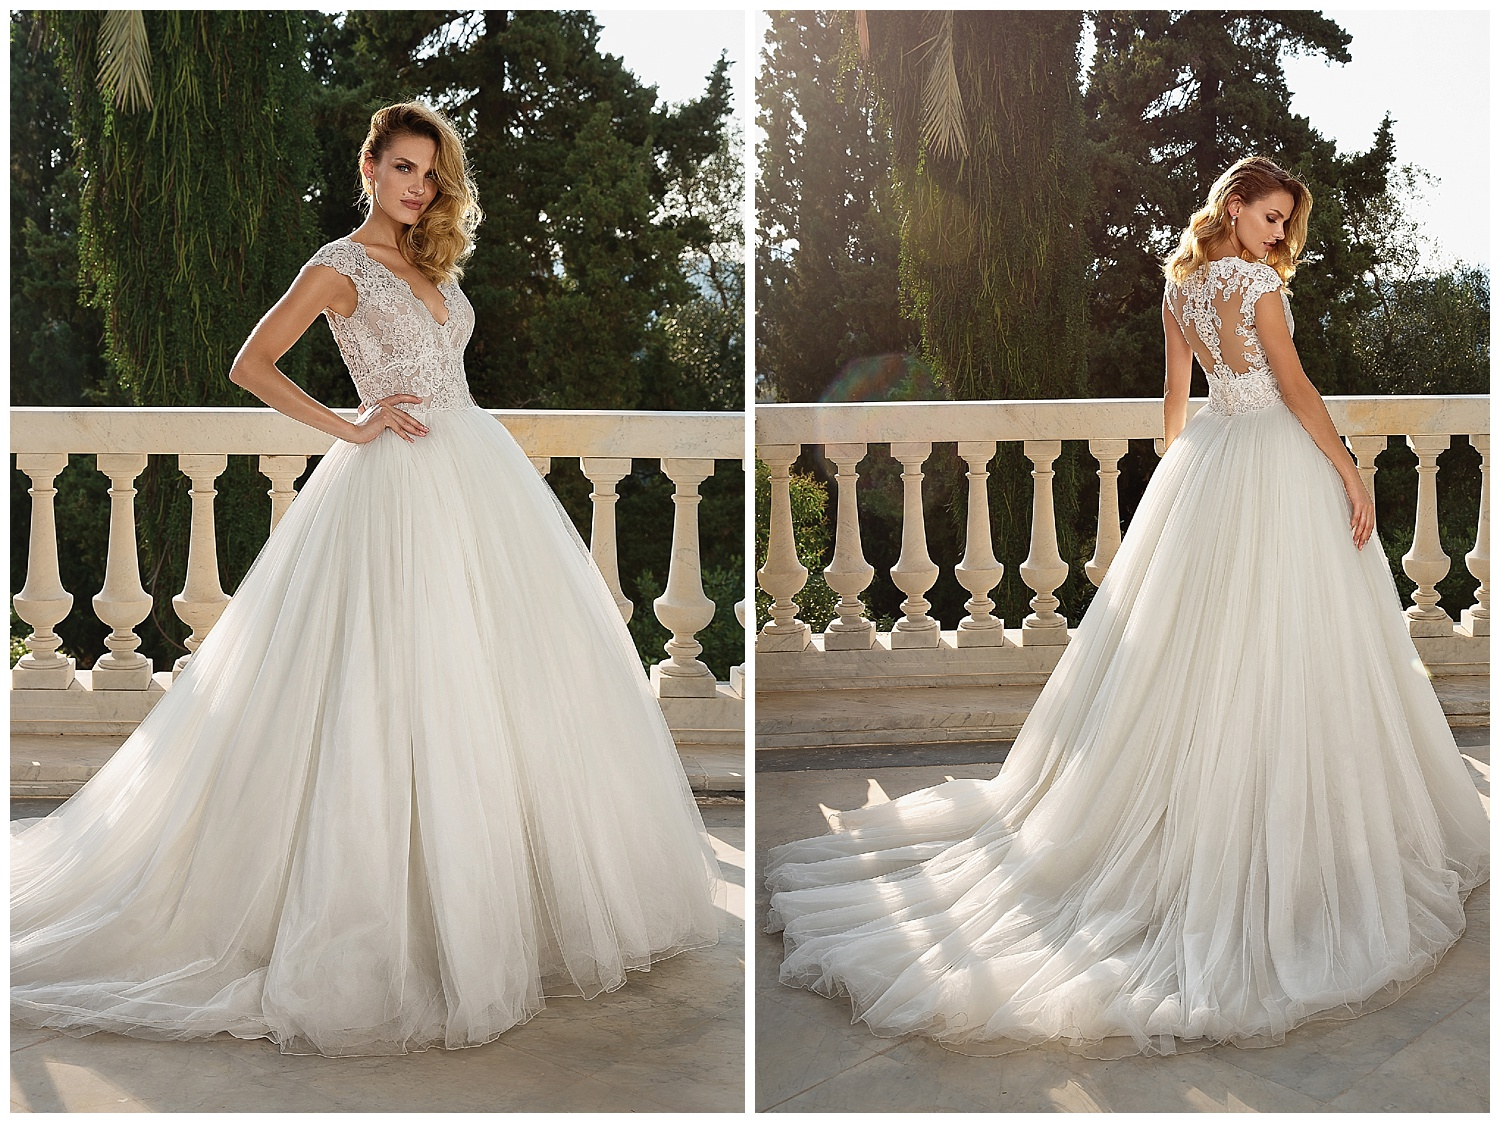 https://www.dropbox.com/preview/KRISTINE%20BLOG%20FILES%20AND%20IMAGES/Justin%20Alexander%20fall%202019%20bridal%20collection%20-stomped/justin-alexander-88082-tulle-ballgown-wedding-dress-epiphany-boutique-carmel-california.jpg